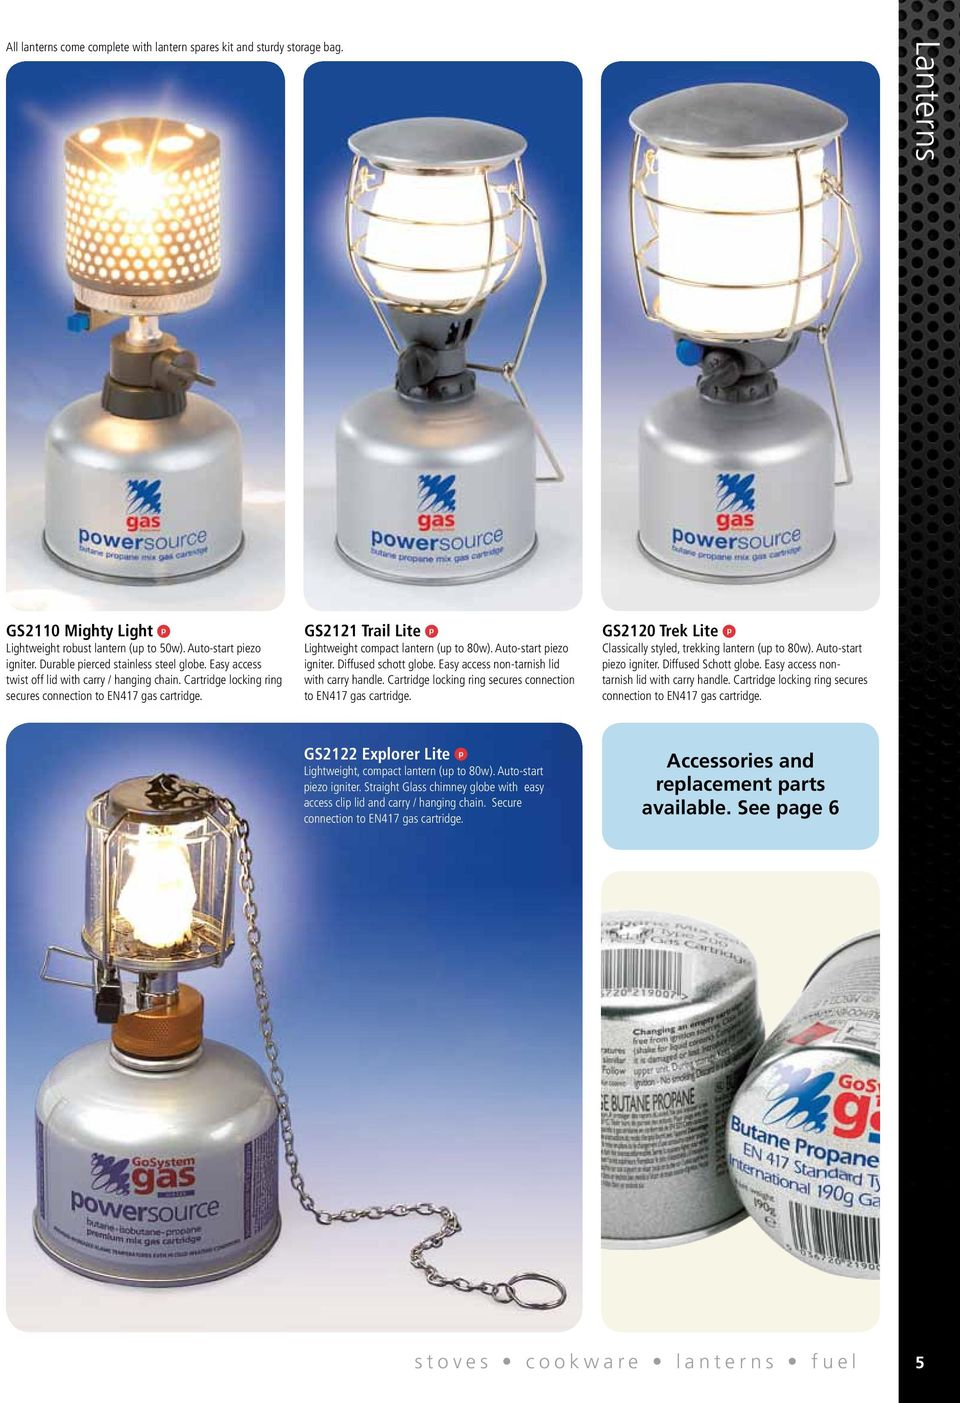 GS2121 Trail Lite p Lightweight compact lantern (up to 80w). Auto-start piezo igniter. Diffused schott globe. Easy access non-tarnish lid with carry handle.